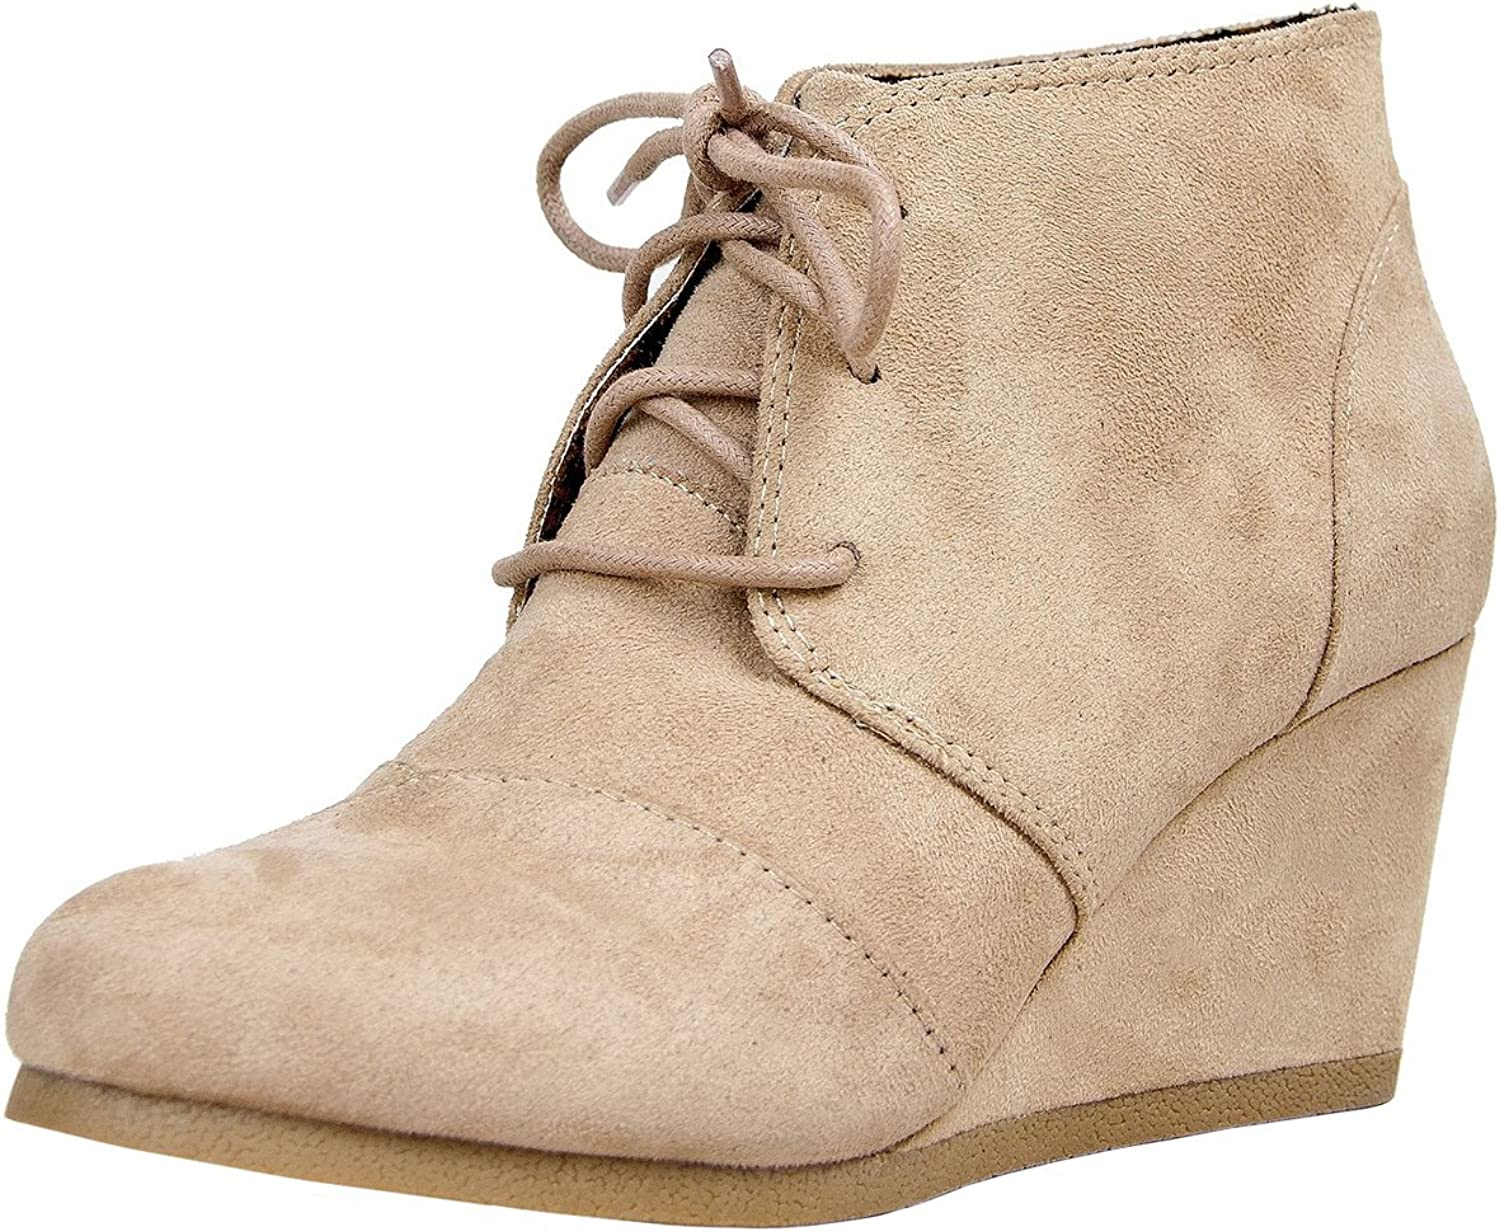 Soda Women's Rex Lace-Up Oxford Ankle Booties